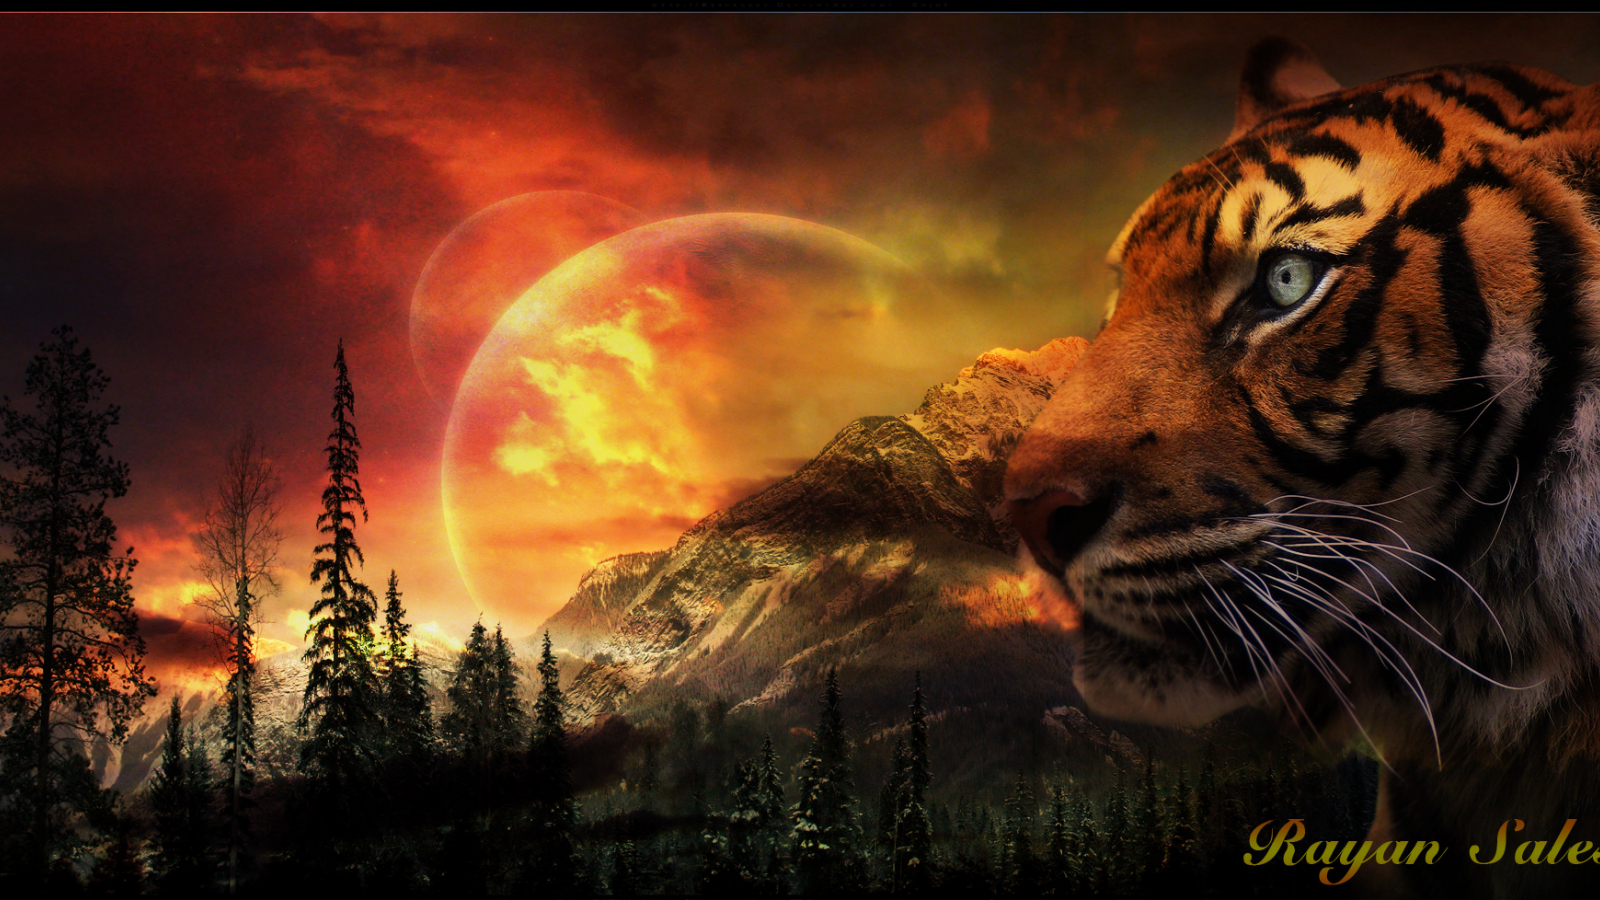 1848x978px cool tiger backgrounds - wallpapersafari